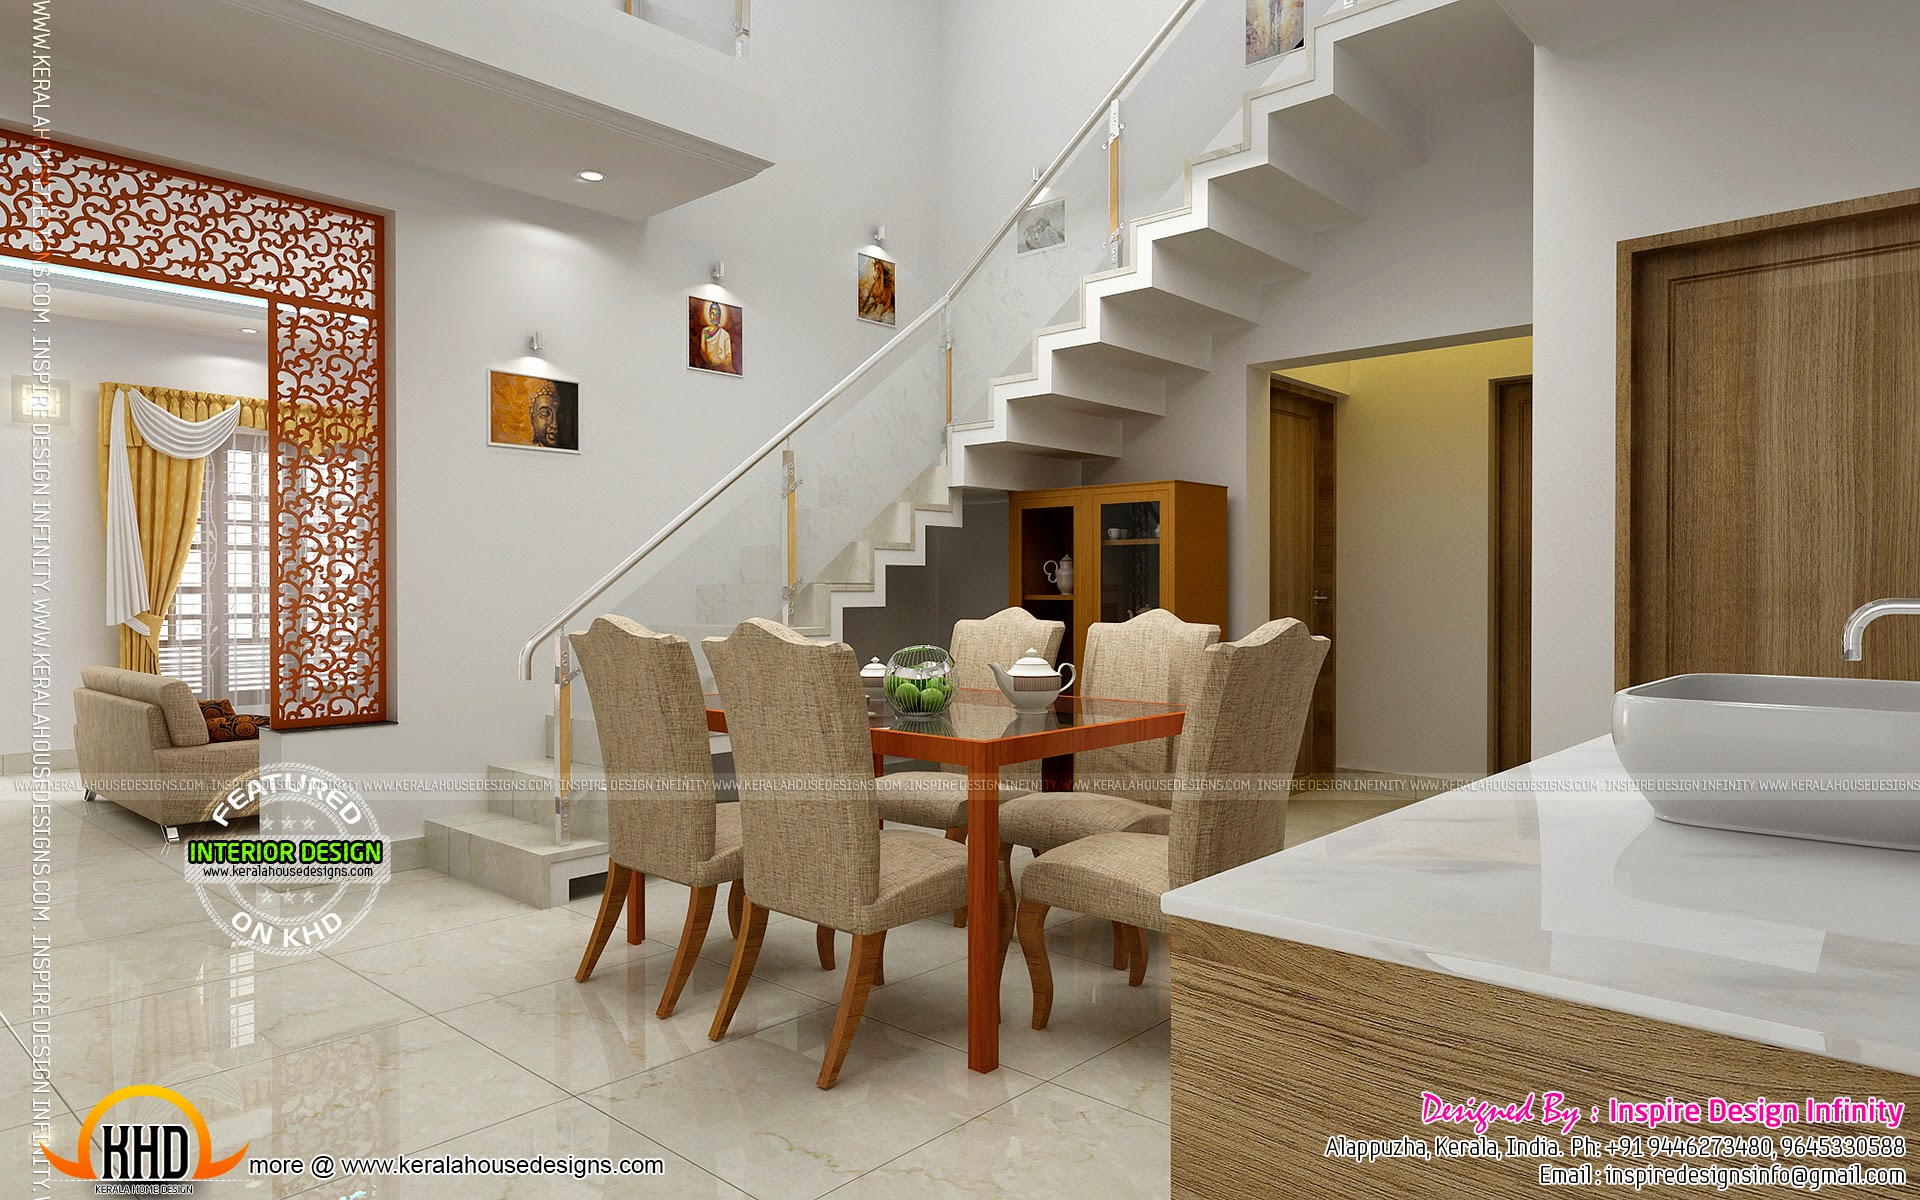 Dining room designs kerala home design and floor plans for Kerala house living room interior design